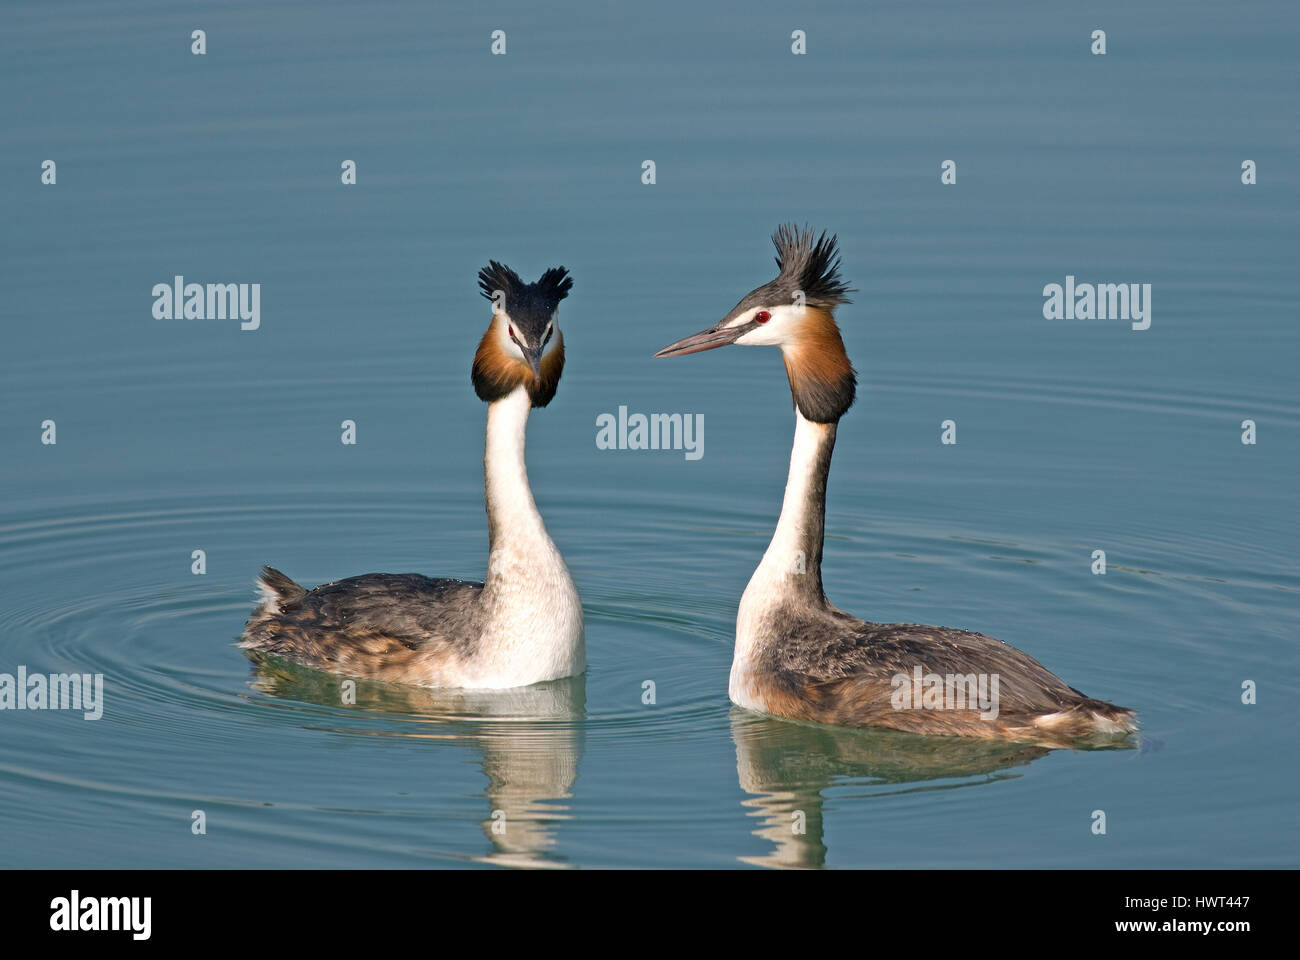 Couple of great crested grebes (Podiceps cristatus), courtship ritual, Lake Trasimeno, Umbria, Italy, Europe Stock Photo